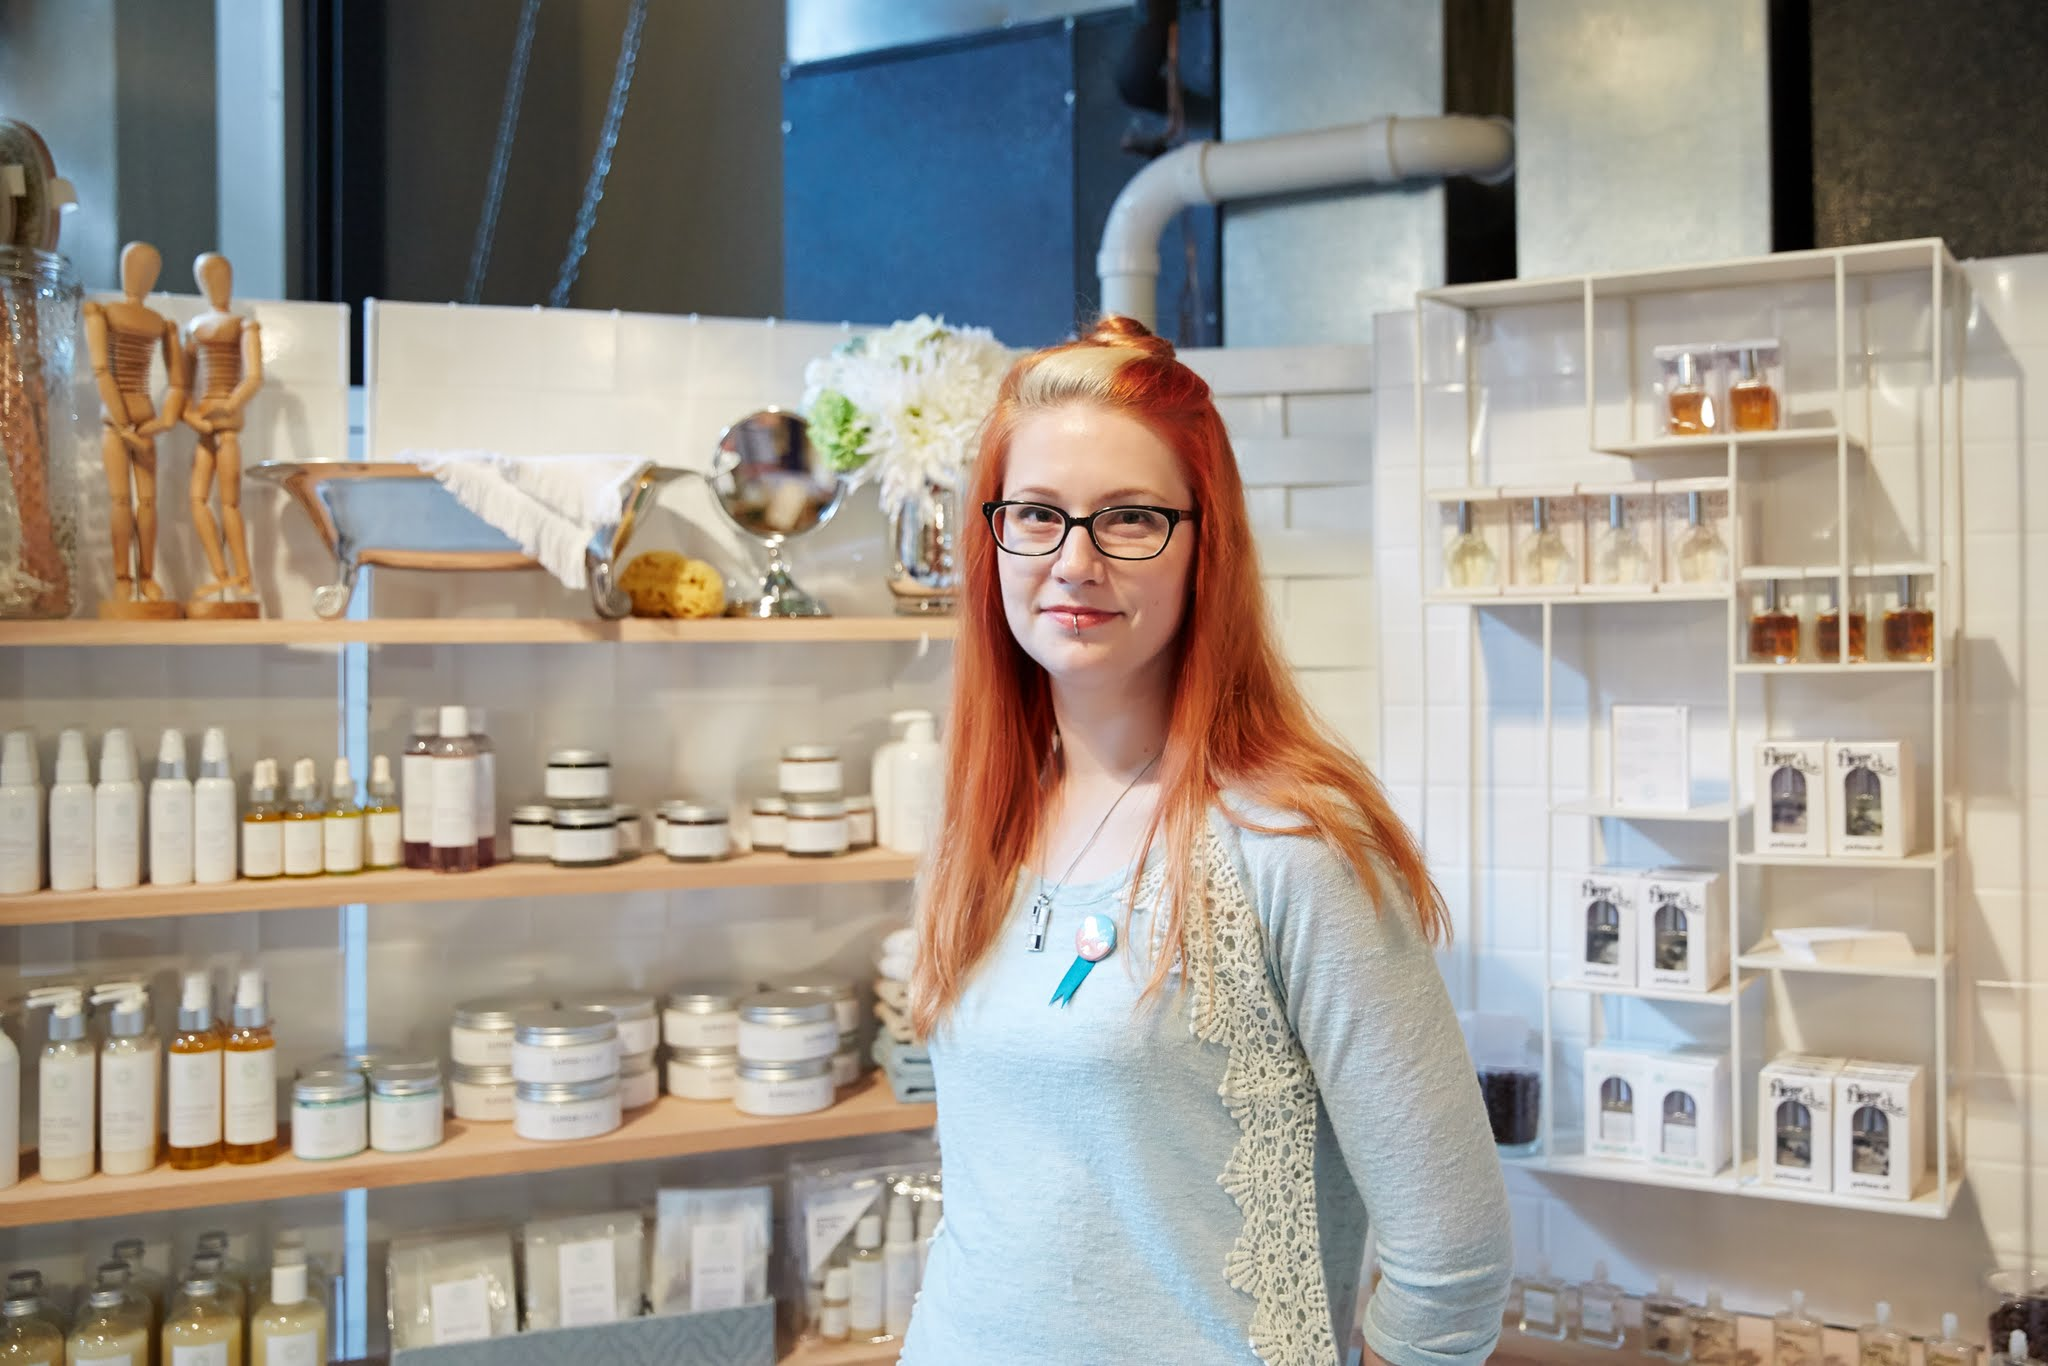 Sarah deHebreard - I'm the sole proprietor of Bonnie, a brand of natural skincare and bath products.